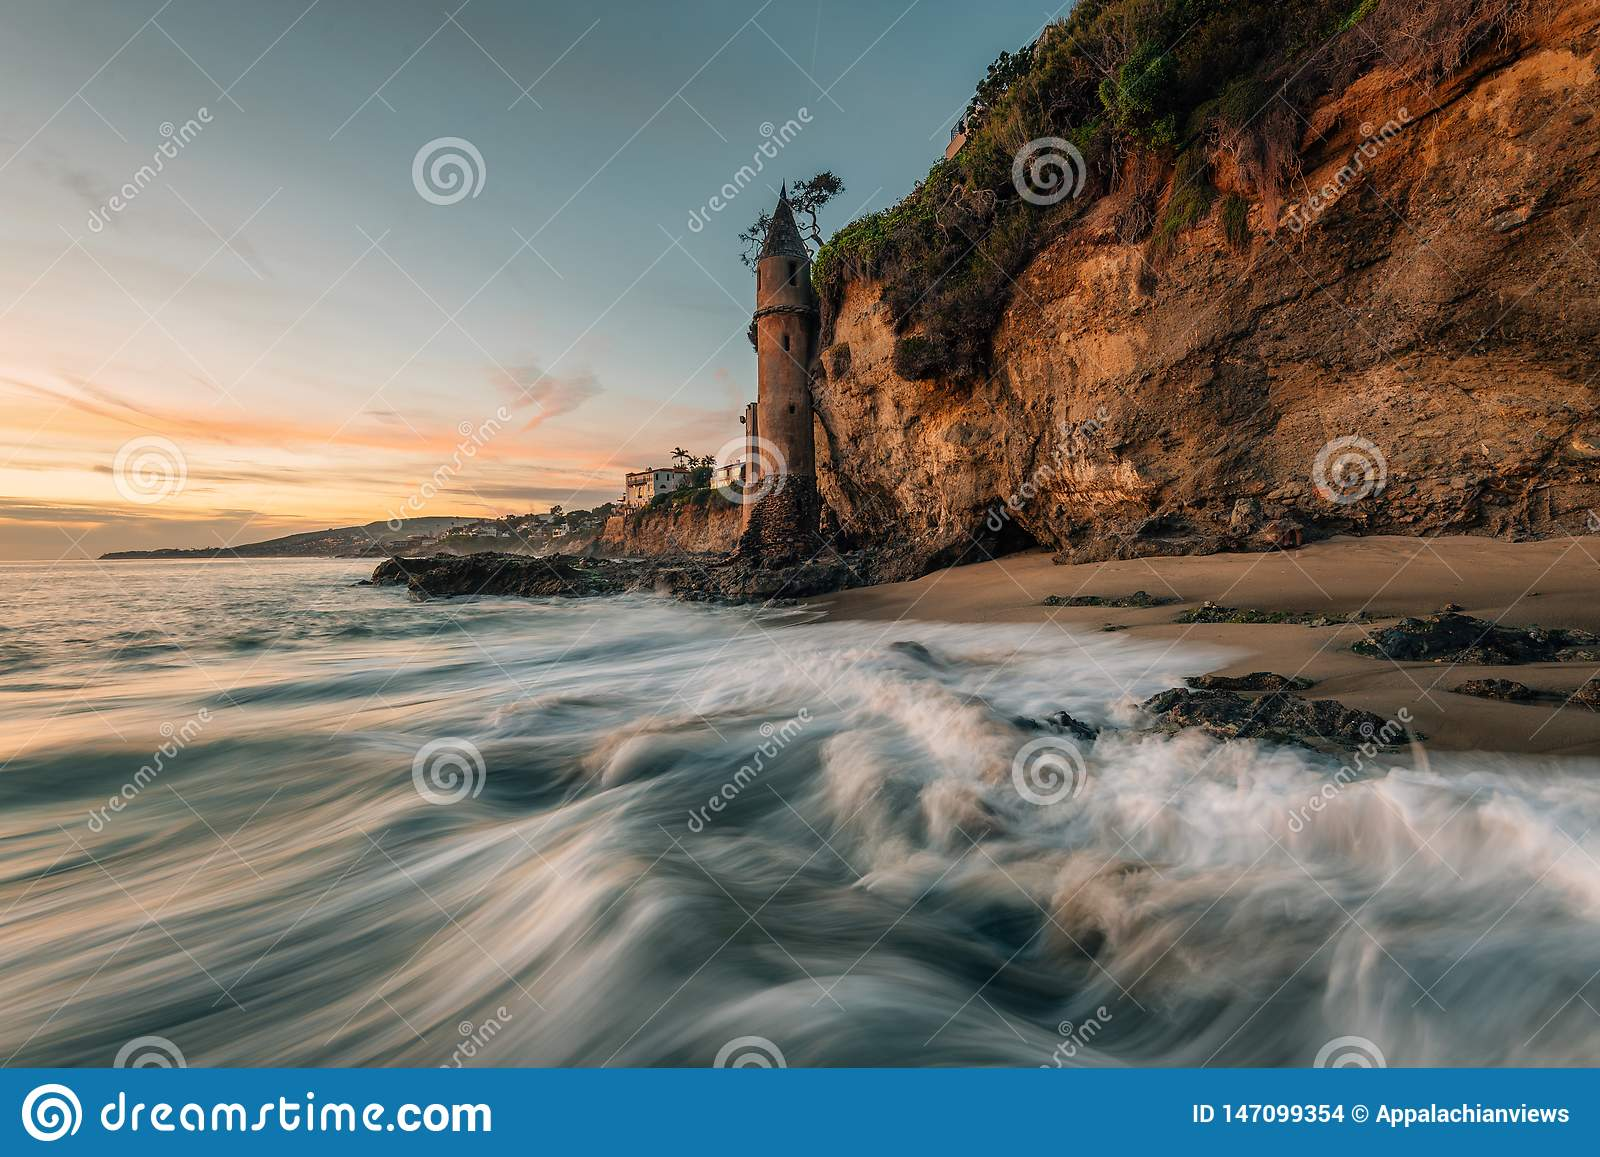 Waves in the Pacific Ocean and the Pirate Tower at sunset, at Victoria Beach, Laguna Beach, California